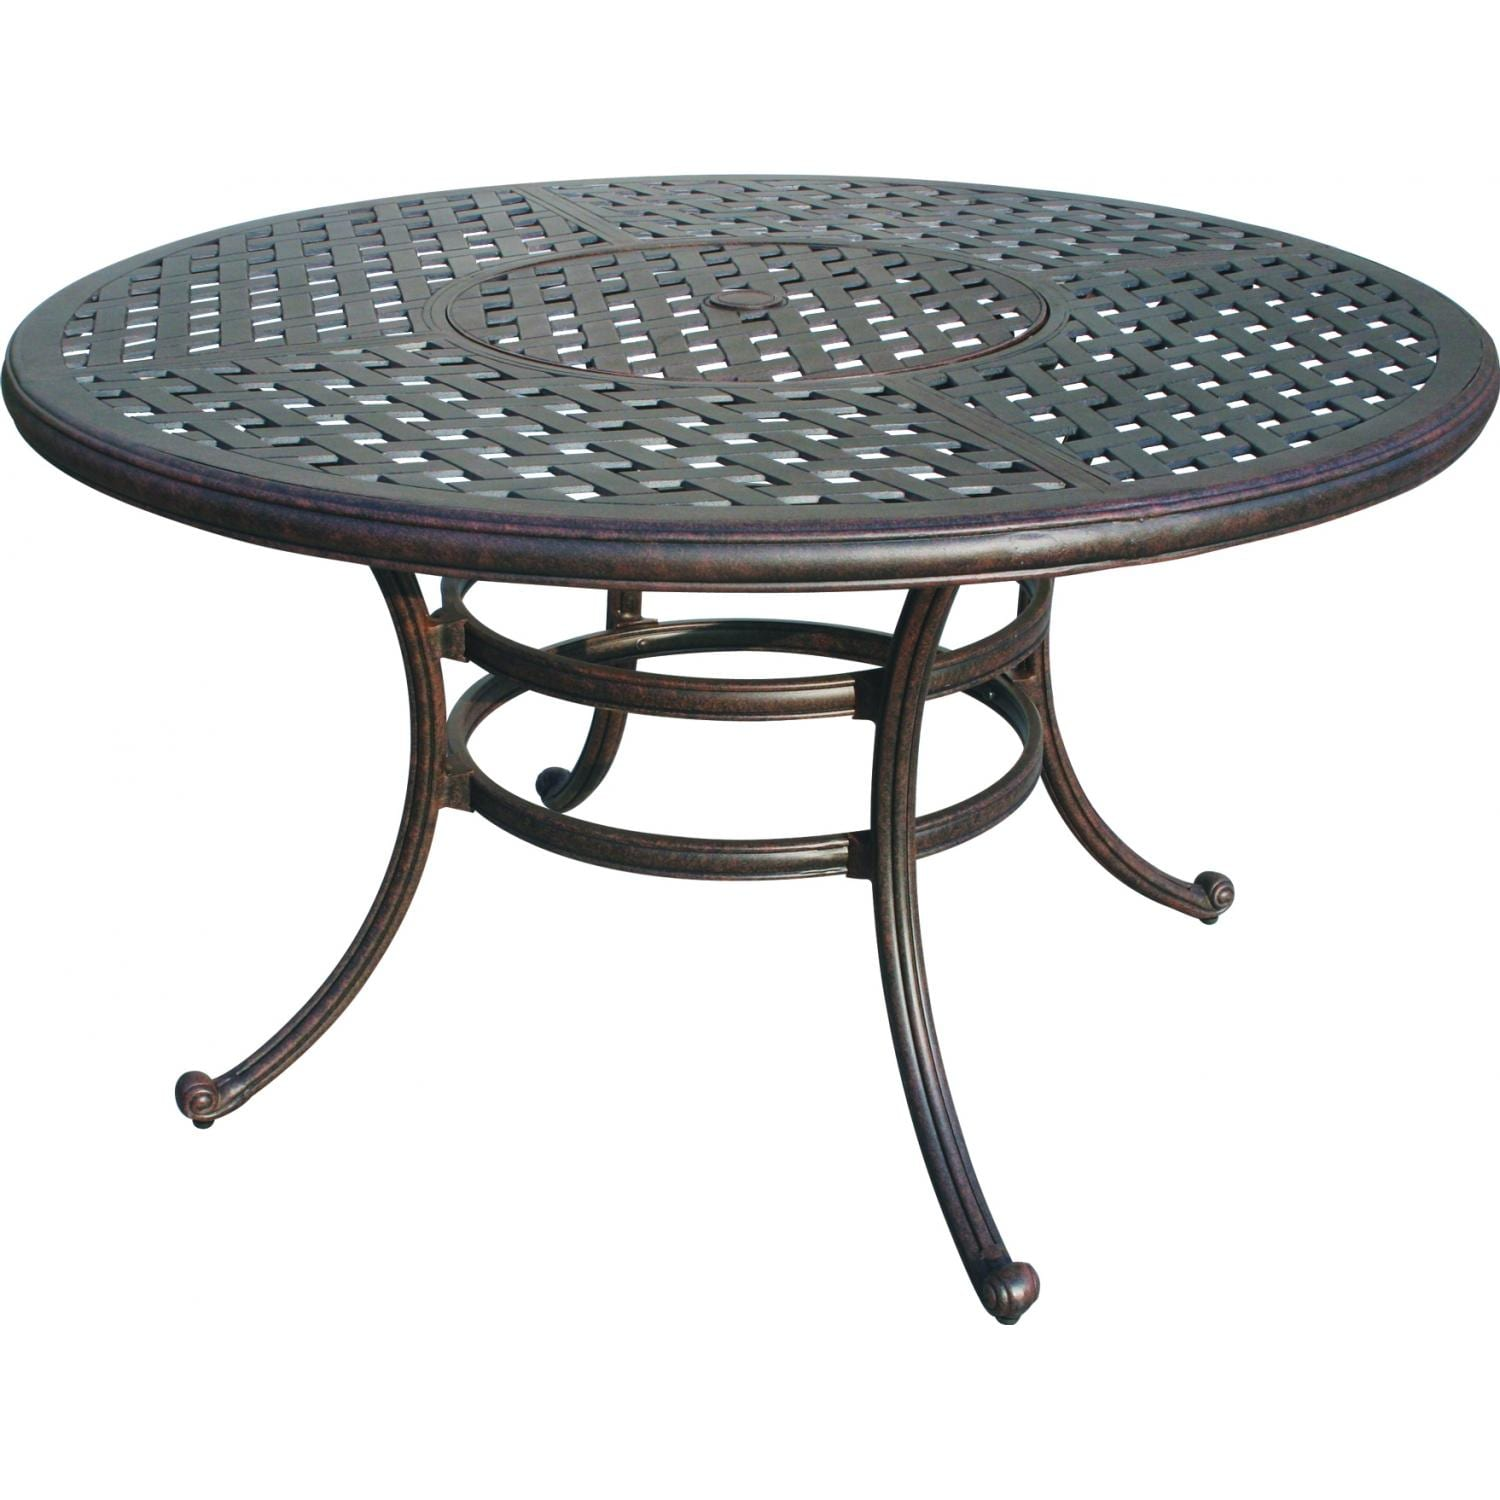 Darlee Series Inch Cast Aluminum Patio Dining Table - 52 inch round outdoor dining table